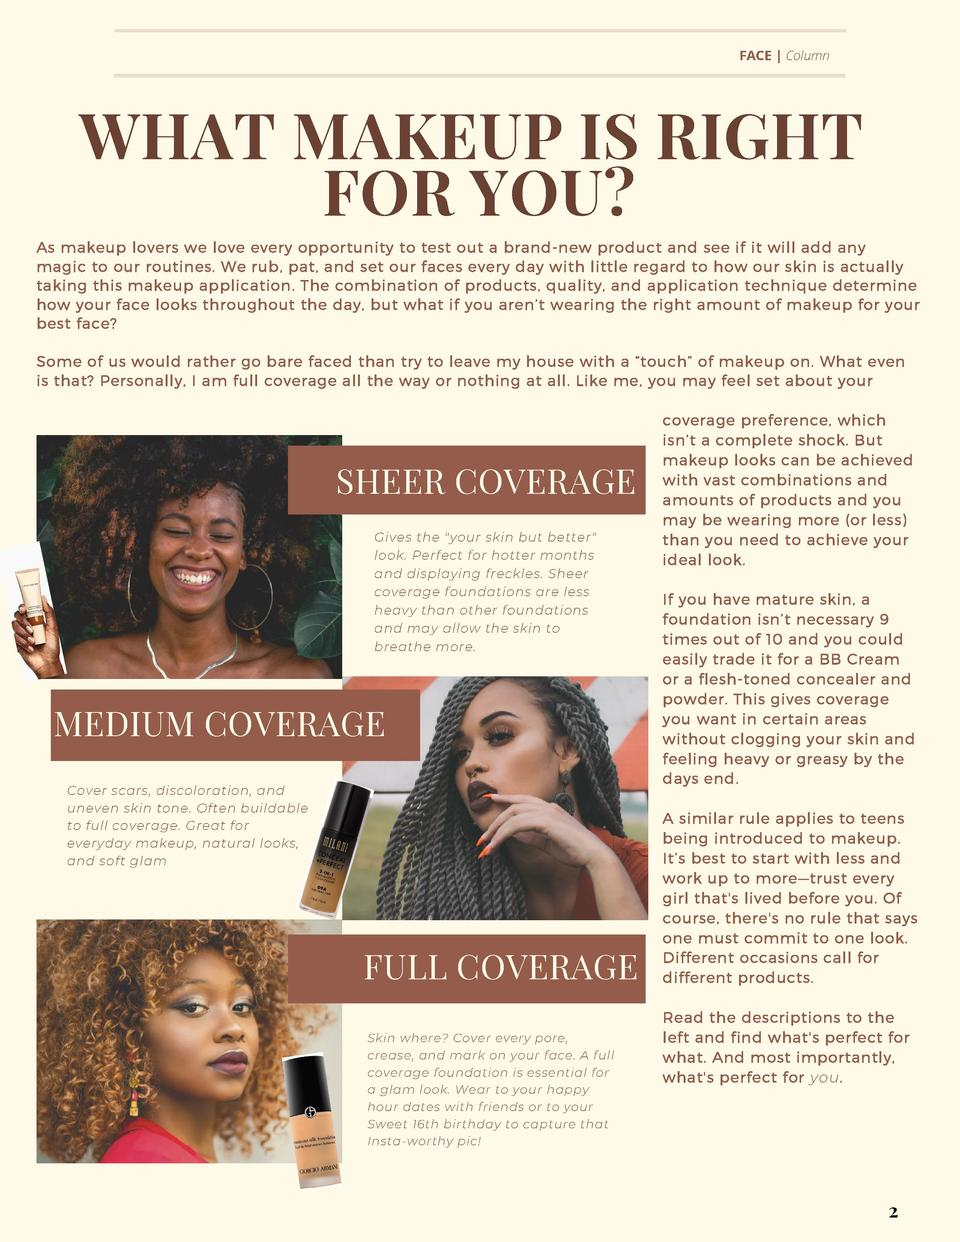 FACE   Column  WHAT MAKEUP IS RIGHT FOR YOU  As makeup lovers we love every opportunity to test out a brand-new product an...